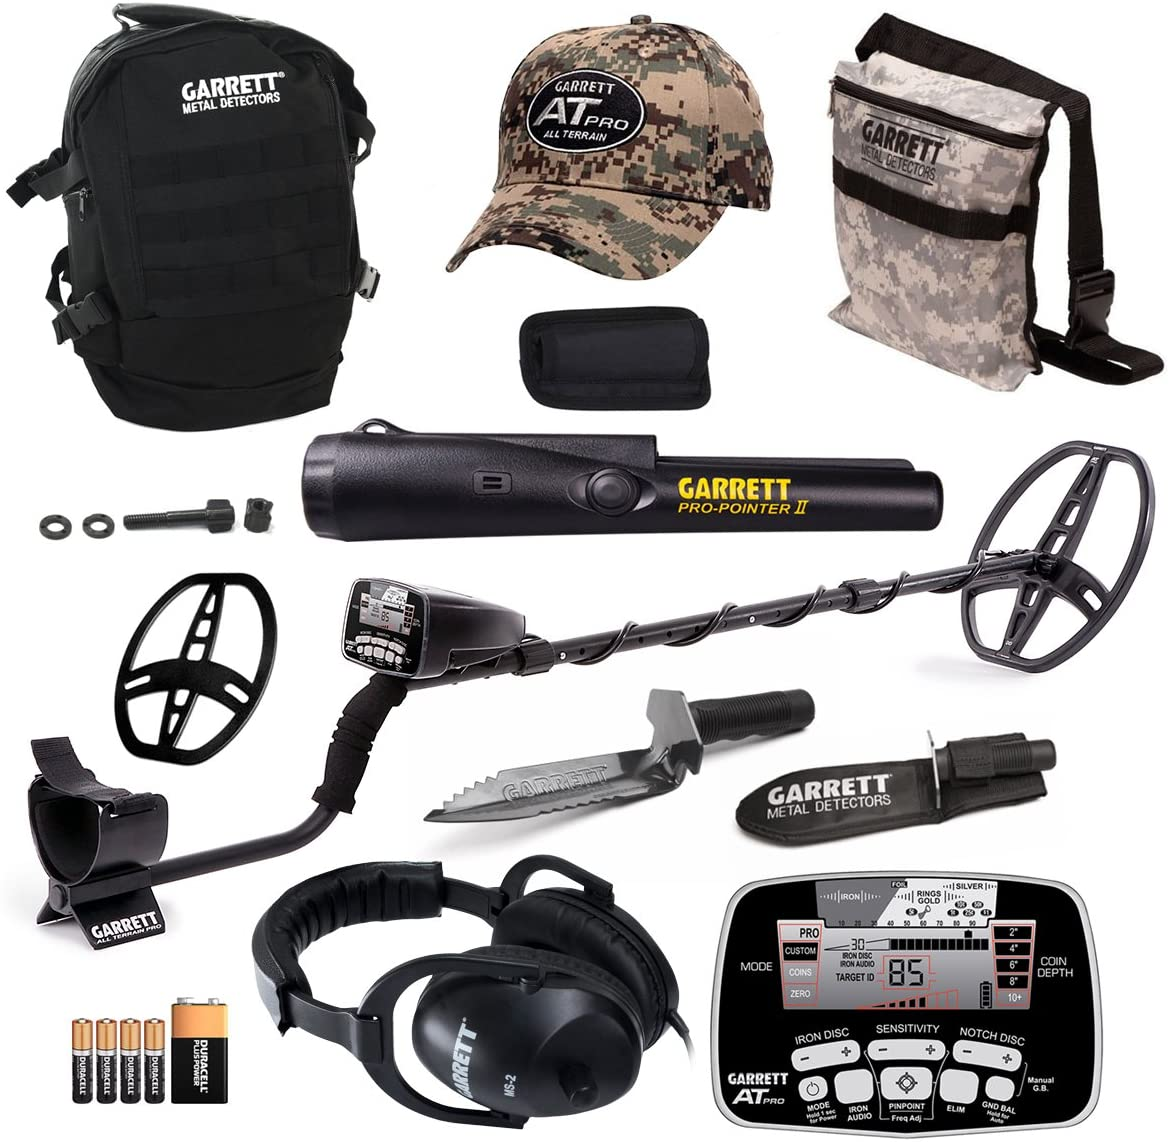 Garrett at Pro Metal Detector Bonus Pack with ProPointer II and Edge Digger